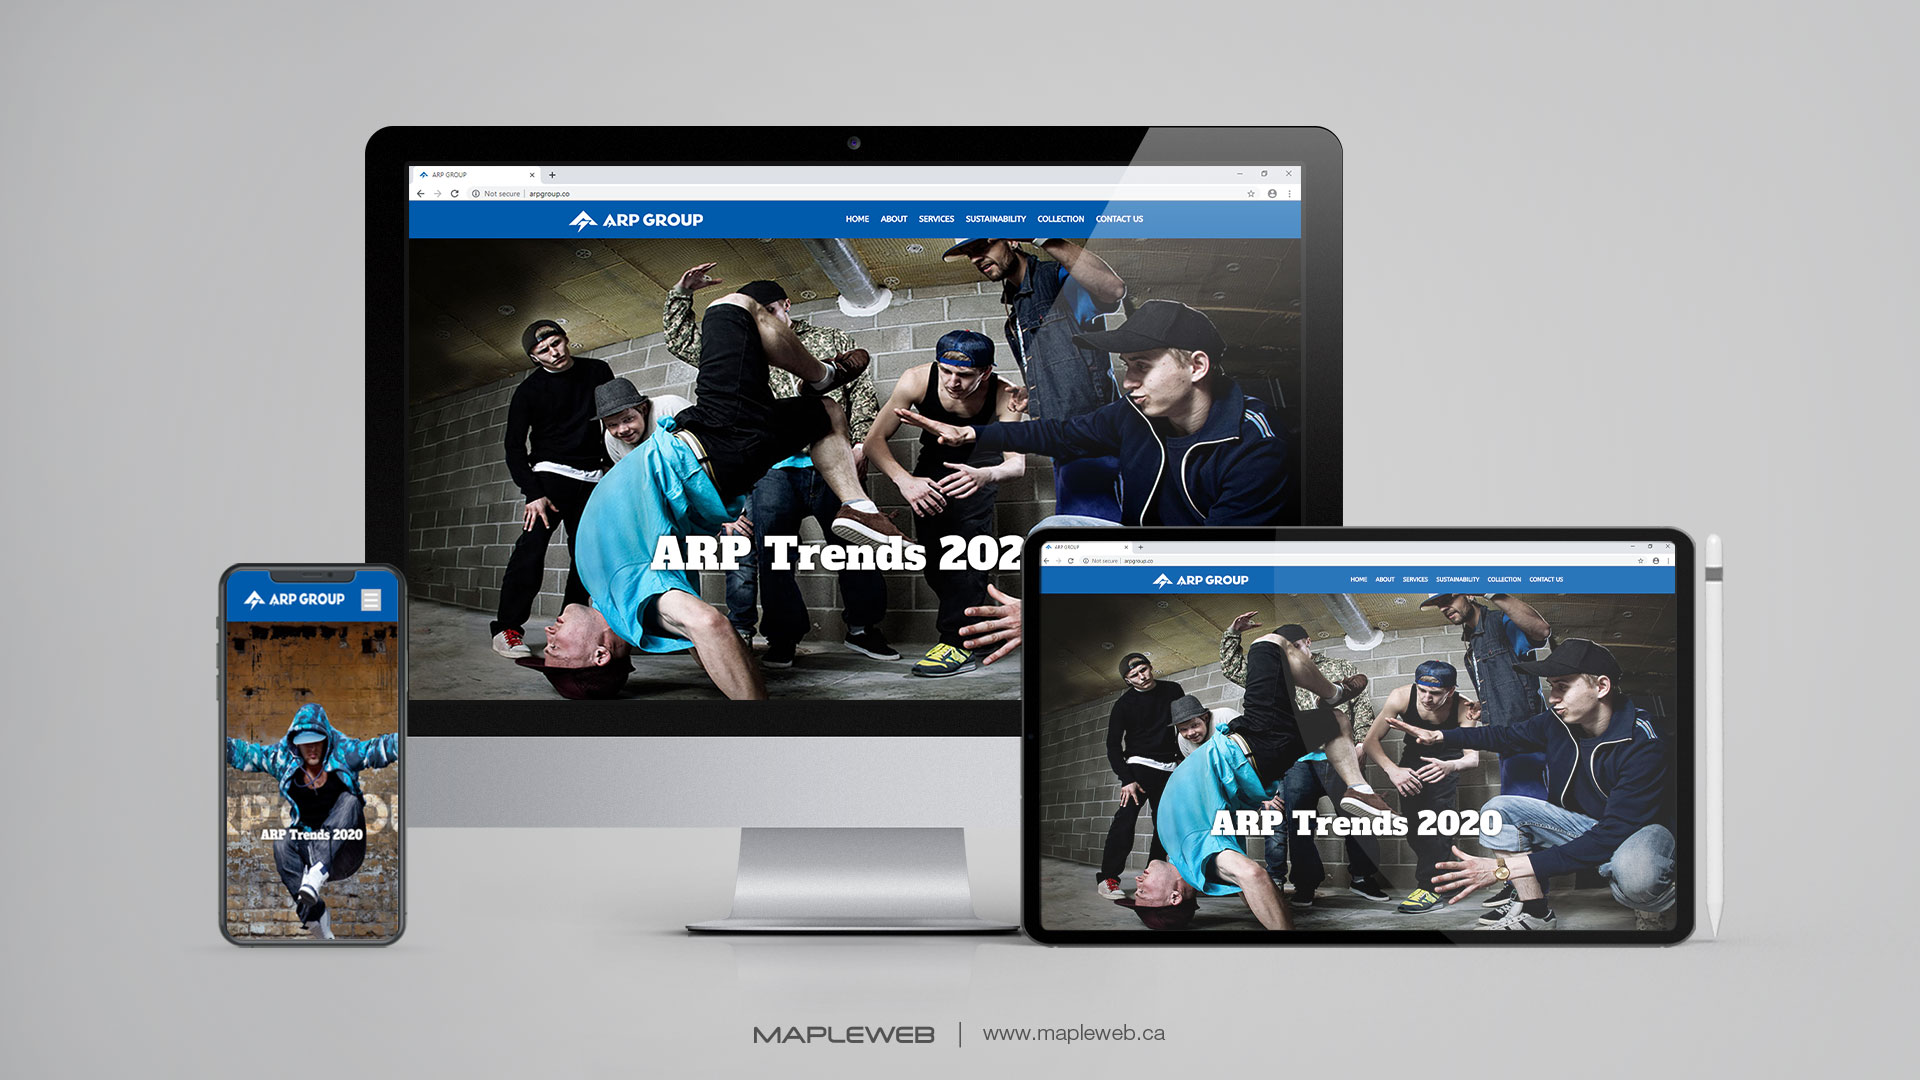 arp-group-Vancouver-web-design-Vancouver-web-development-by-mapleweb-canada-multiple-devices-display